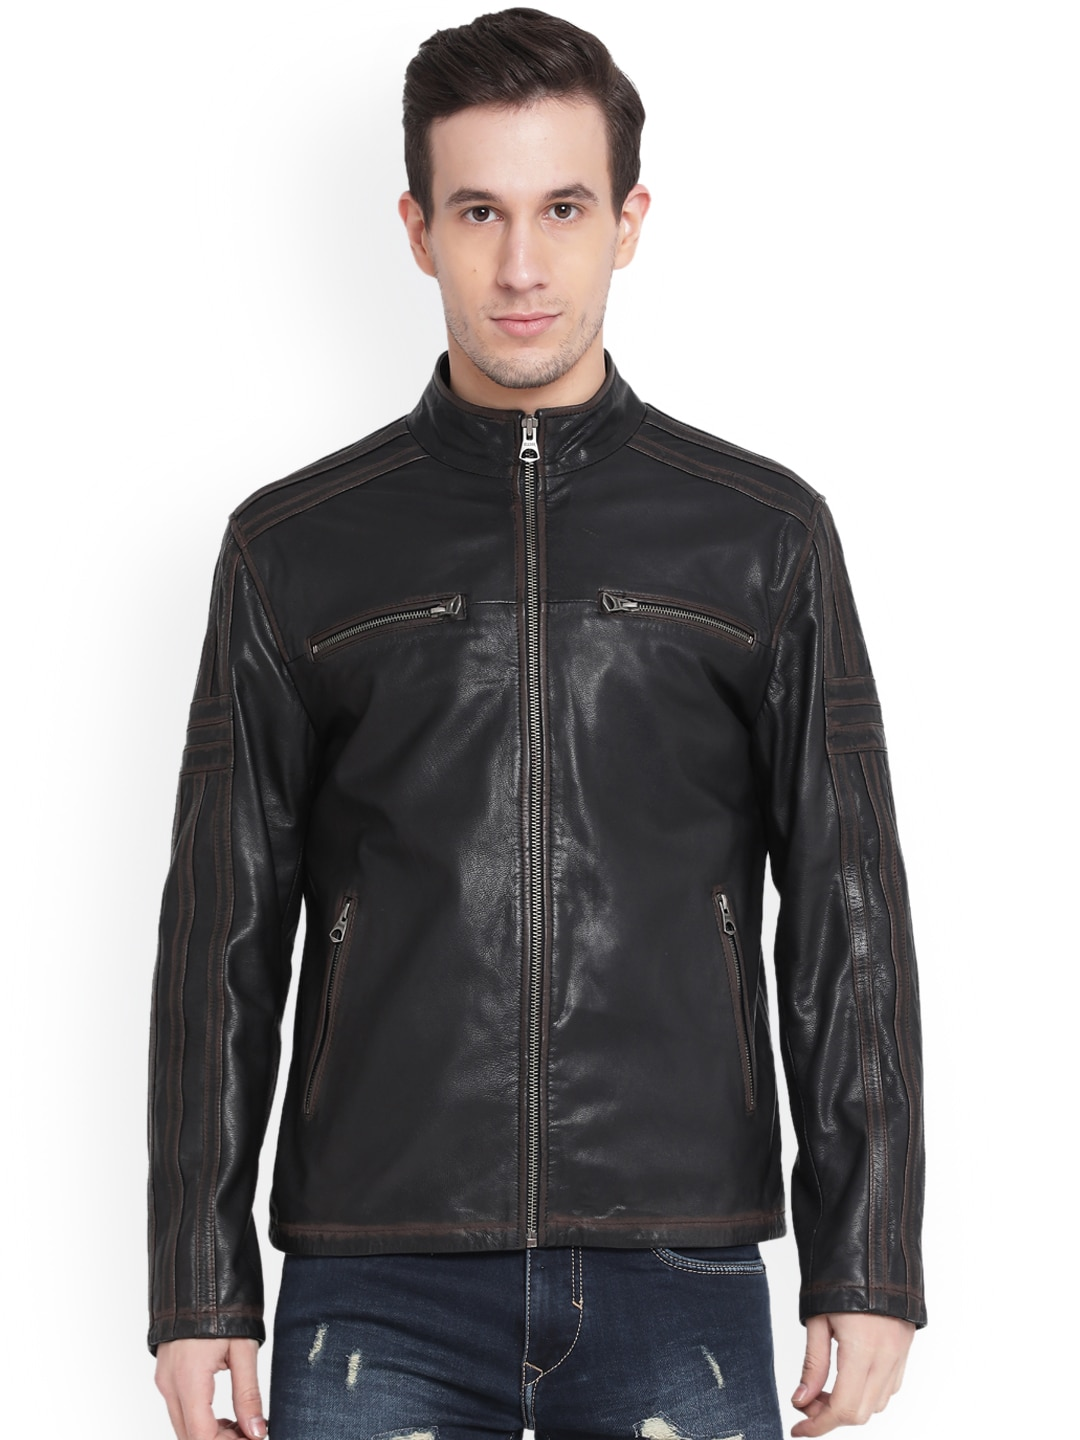 863d795e9 Justanned Leather Jackets - Buy Justanned Leather Jackets online in India